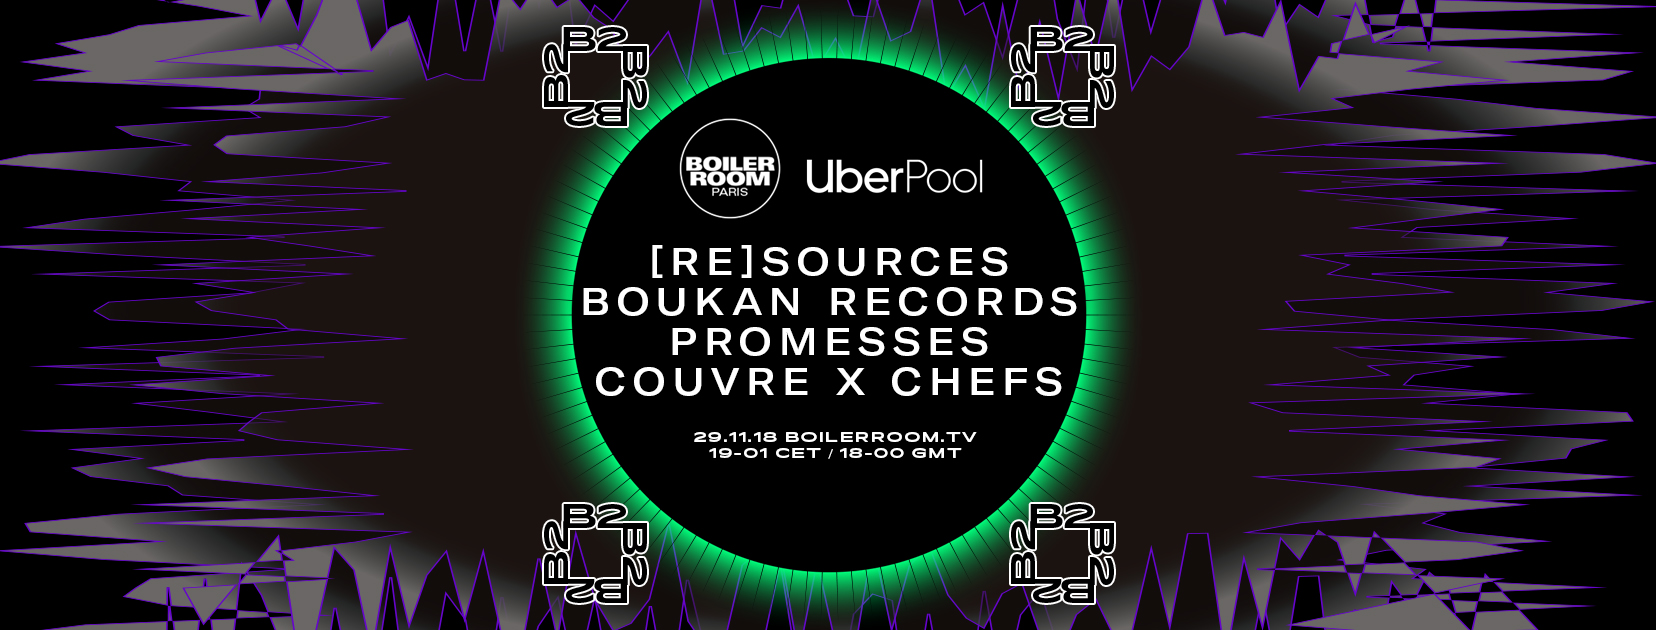 boiler room paris couvre x chefs resources boukan promesses